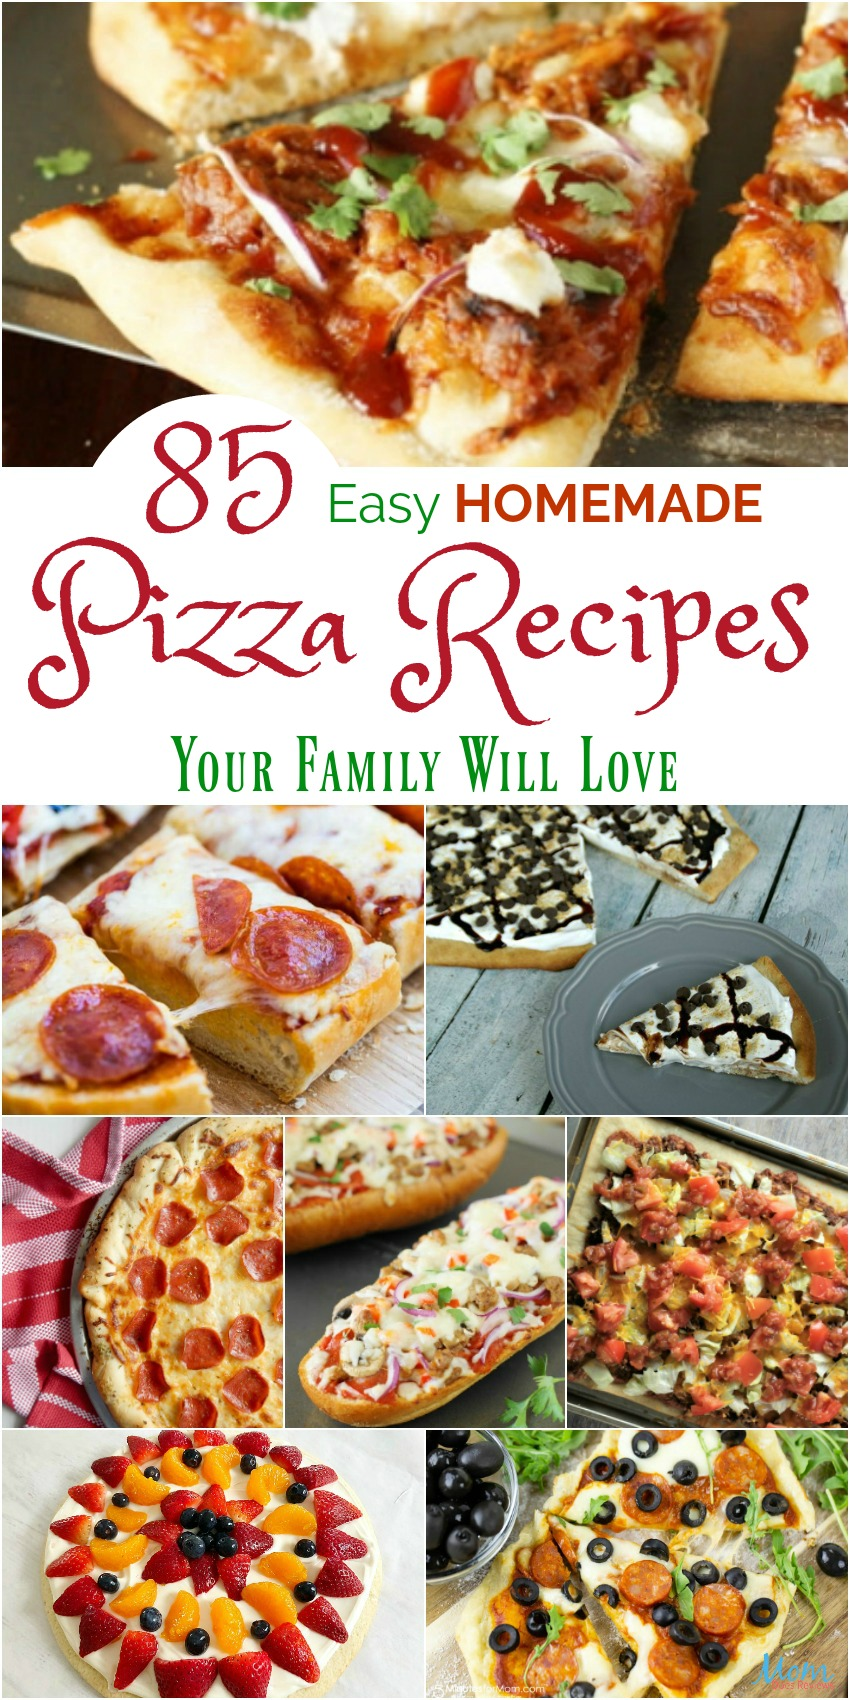 85 Easy Homemade Pizza Recipes Your Family Will Love #recipes #pizza #food #getinmybelly